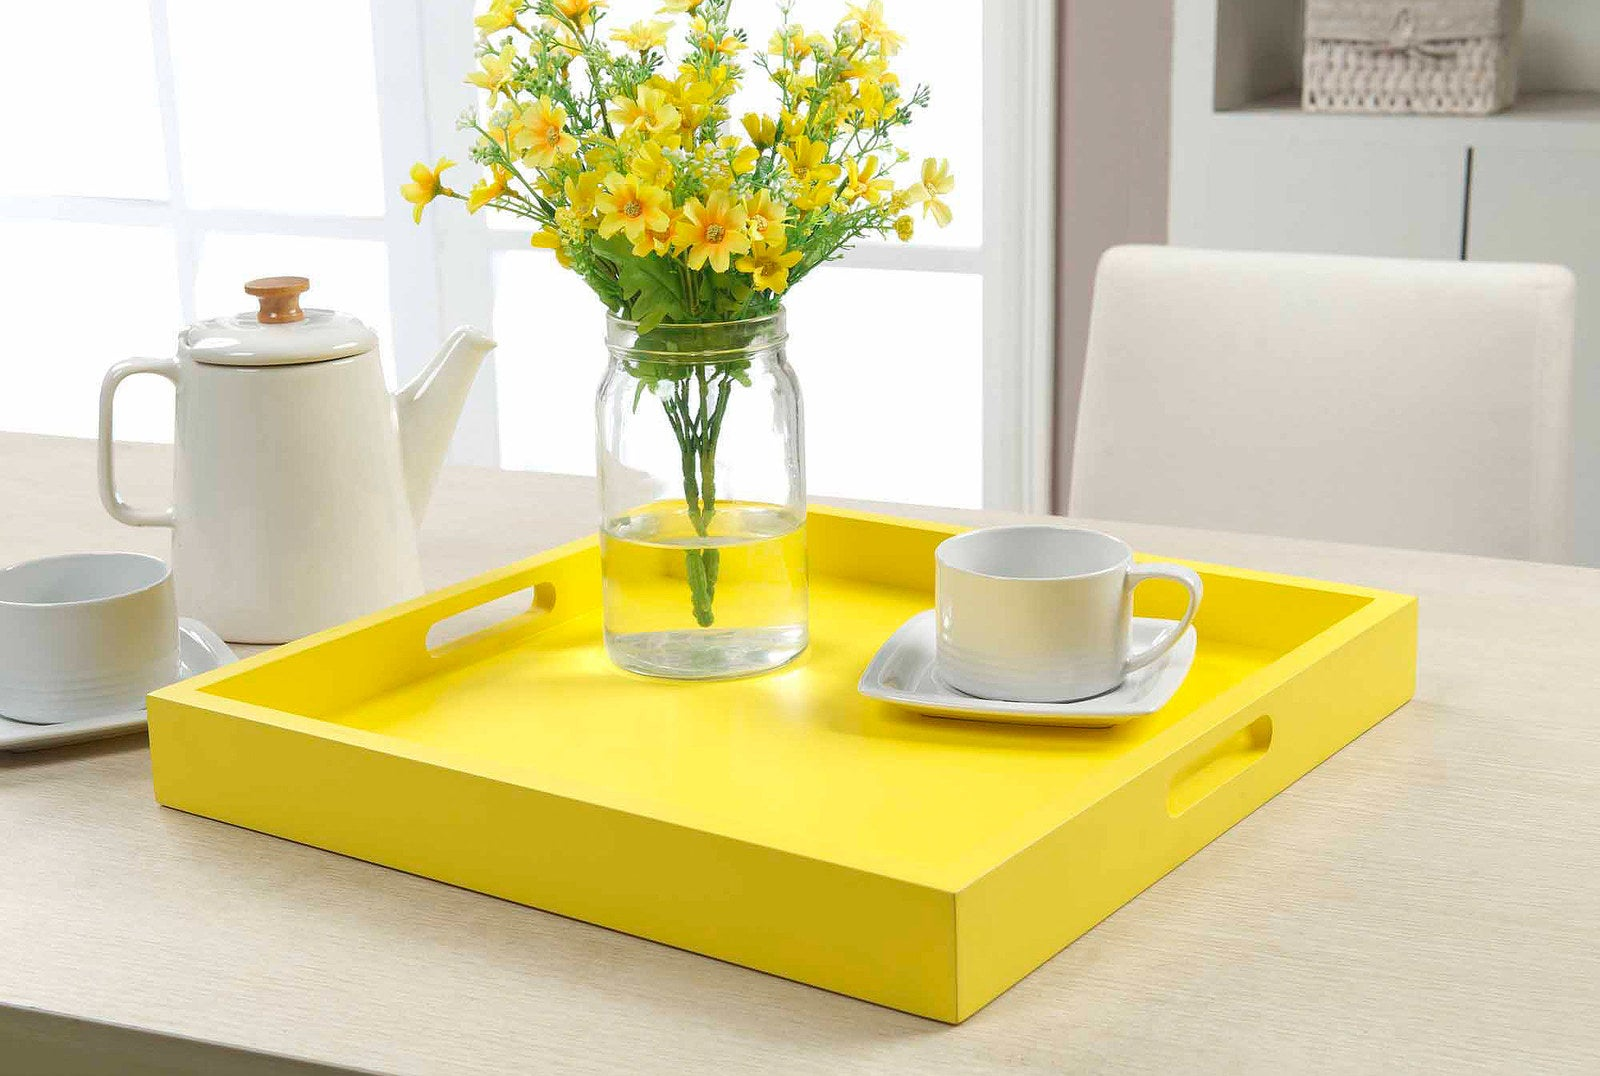 A bright and sunny serving tray to make up for grey and rainy mornings.